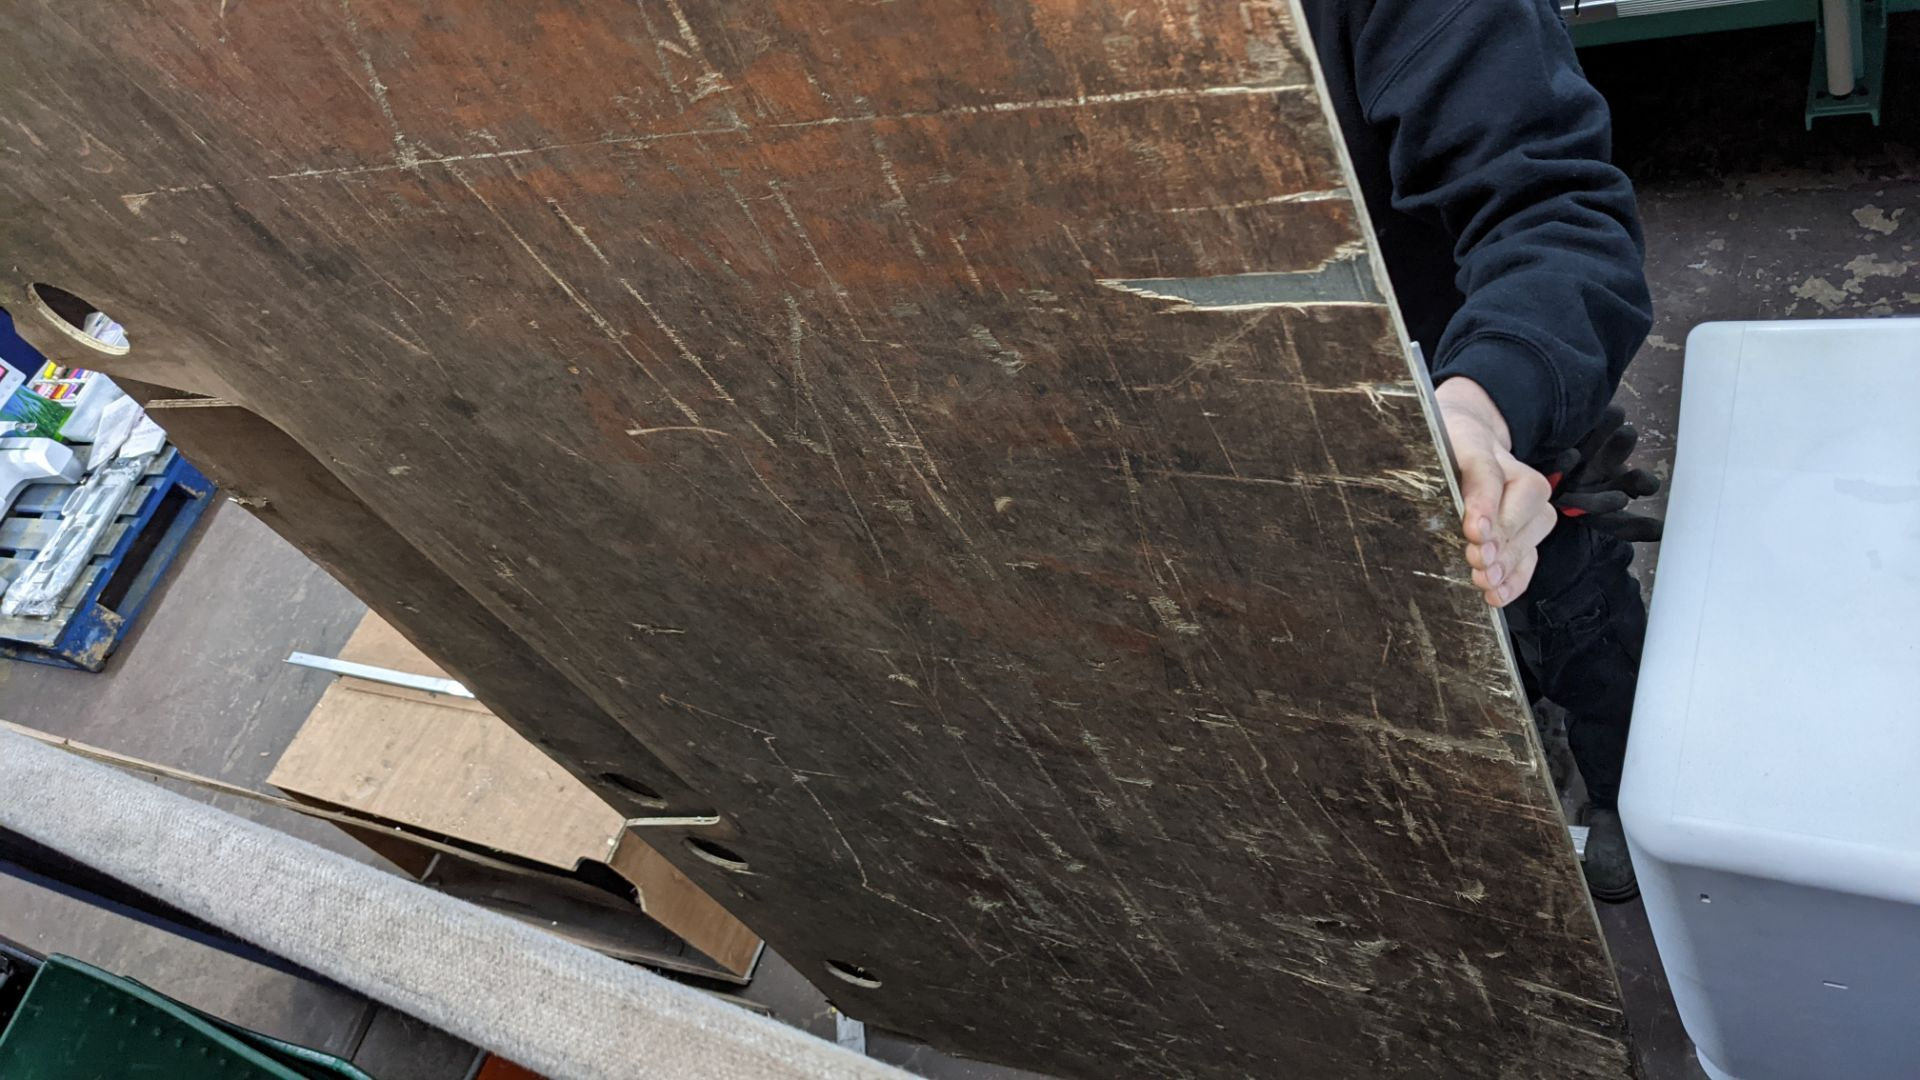 Floor ply lining as fitted to Peugeot Boxer L4 panel van - Image 7 of 8